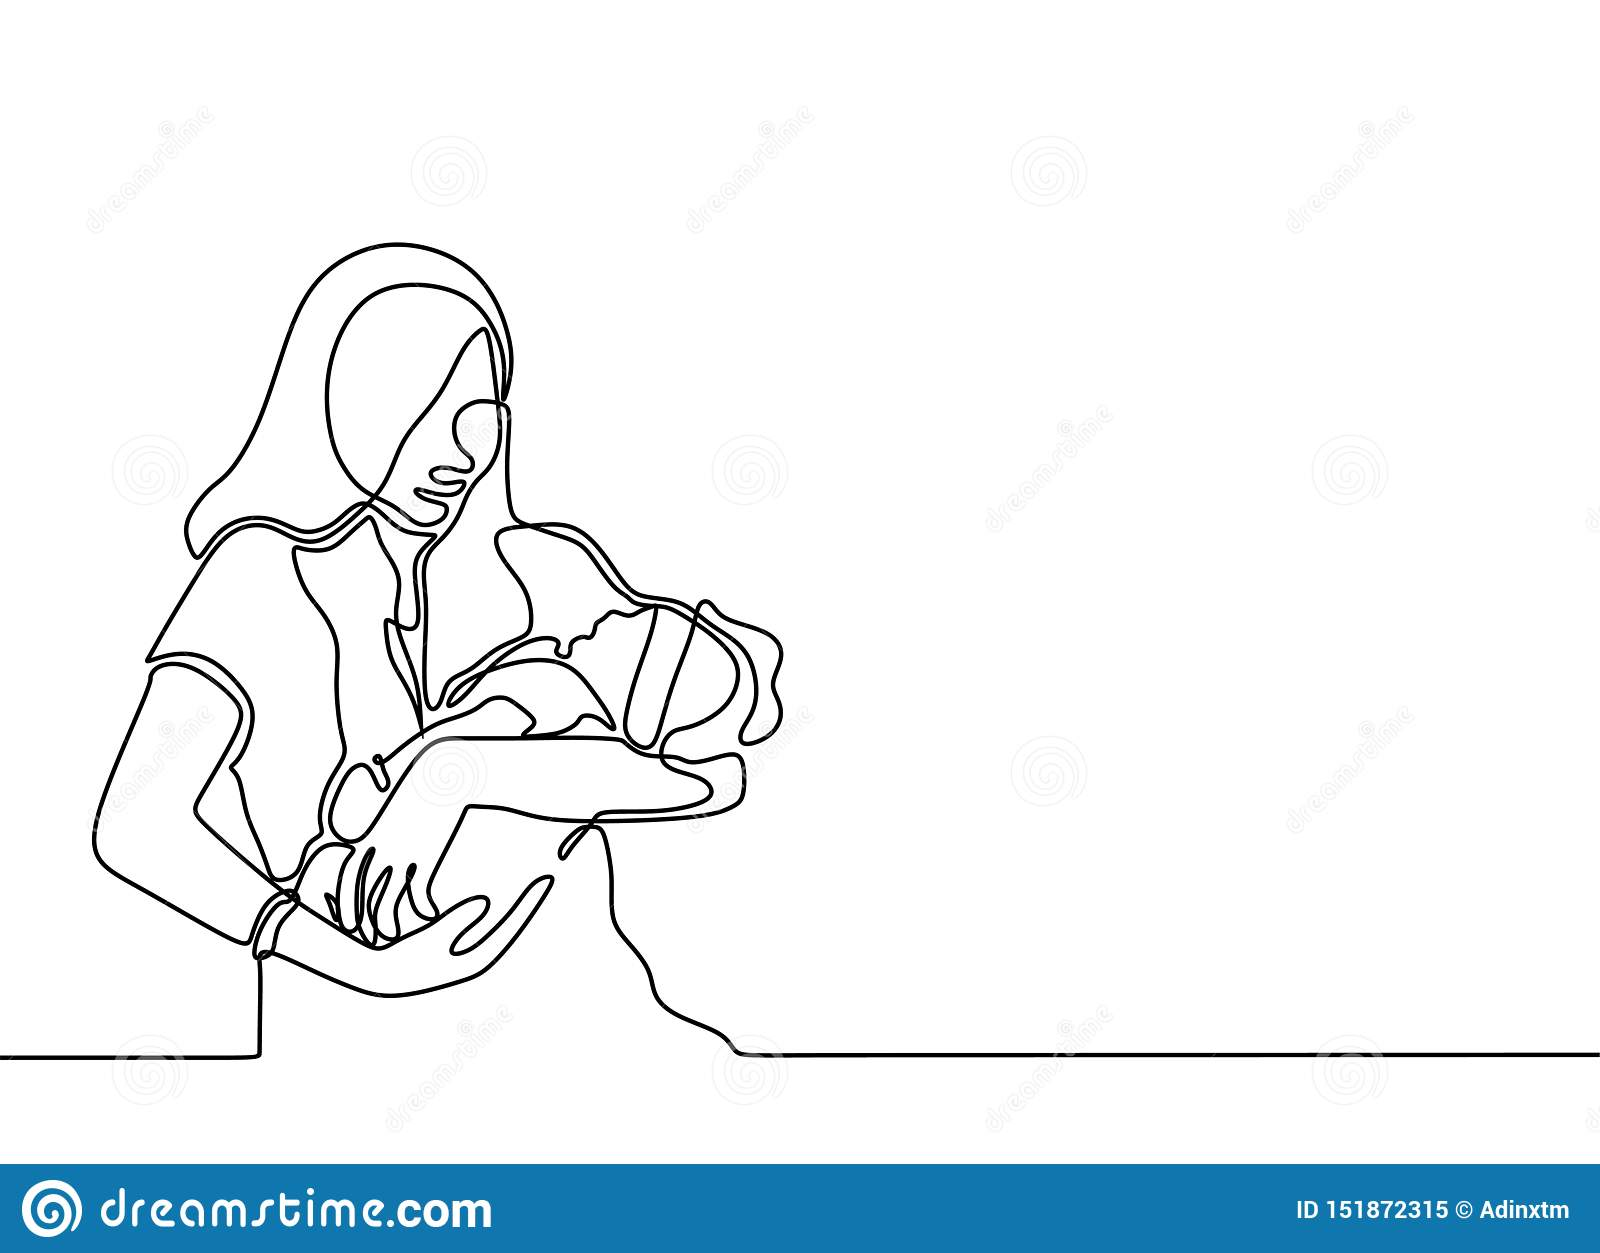 Continuous One Line Drawing Of Baby Born And Mother